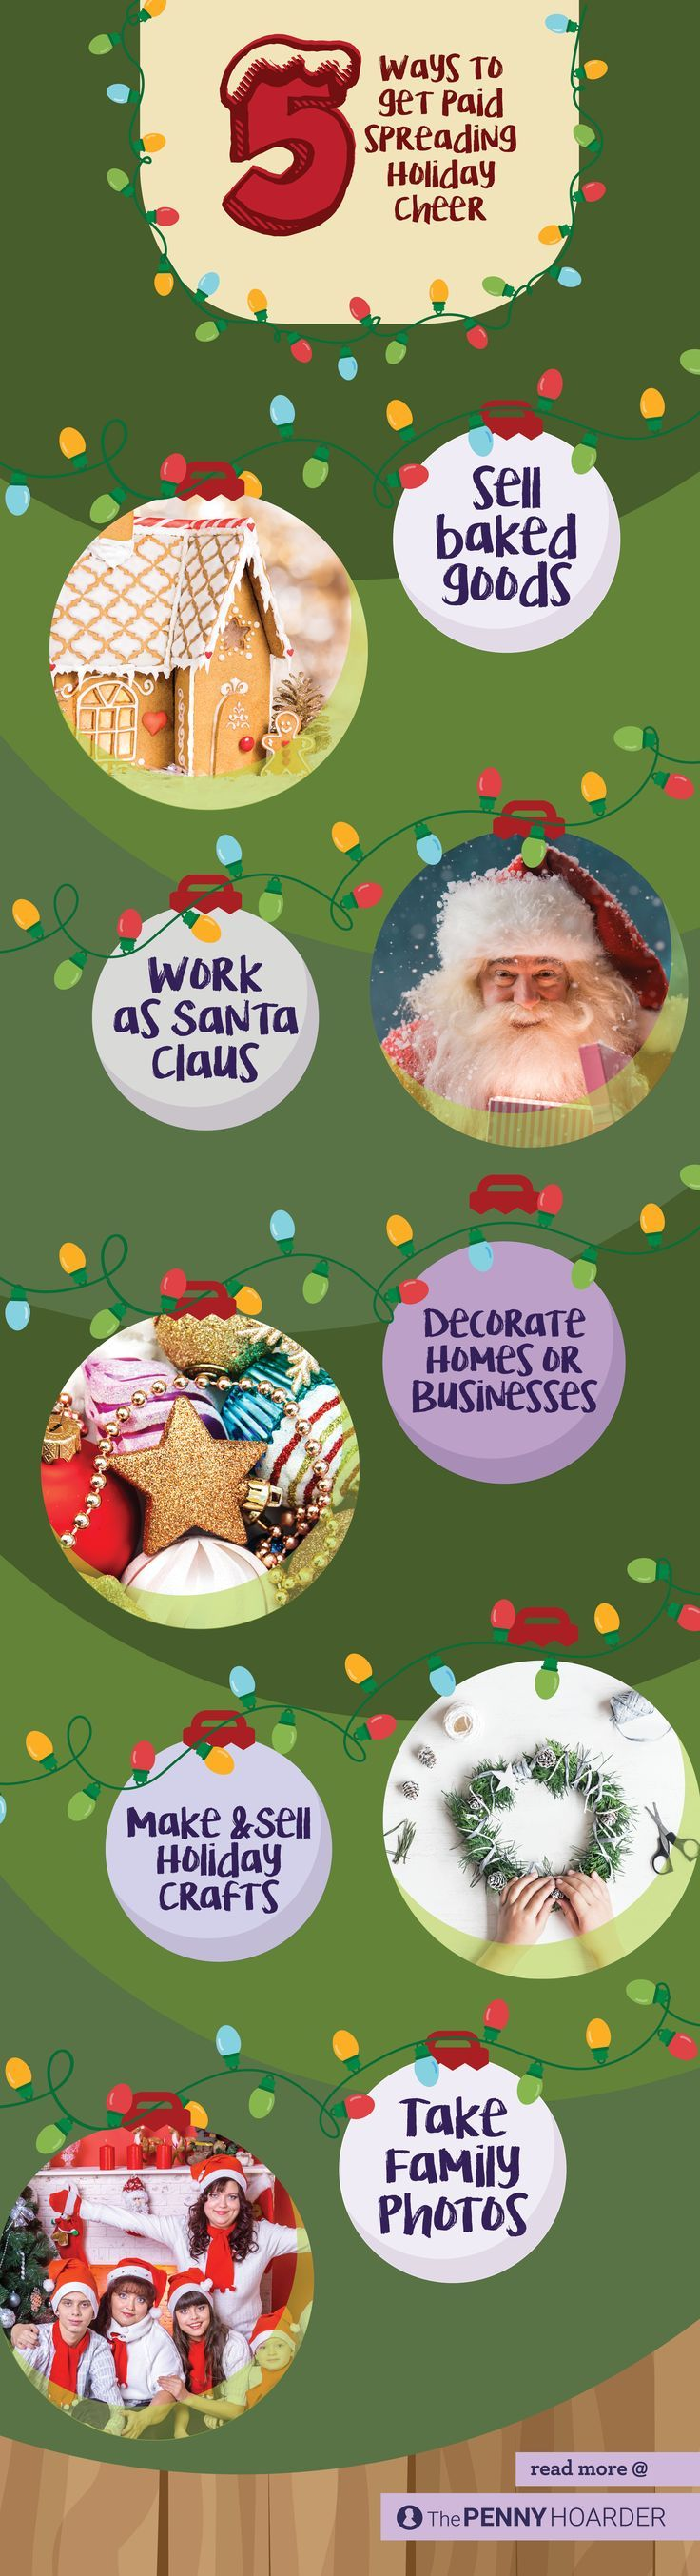 Are you chock full of holiday spirit? We've rounded up five Christmas jobs that might be perfect for you. /thepennyhoarder/